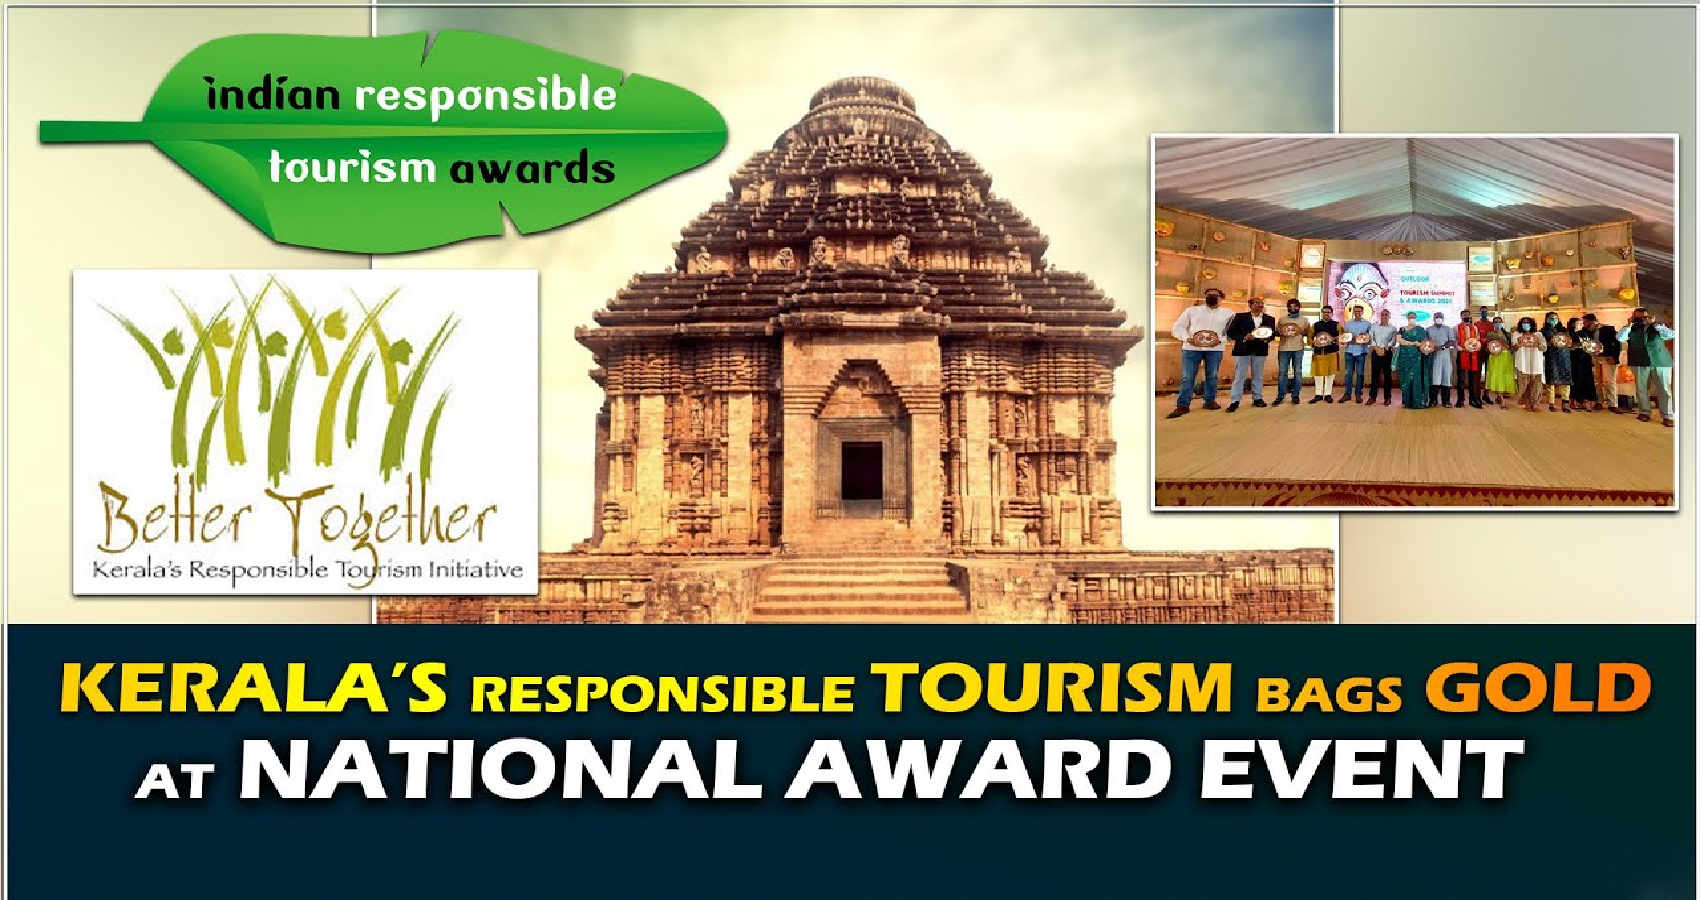 Kerala Bags Gold at the Indian Responsible Tourism Awards